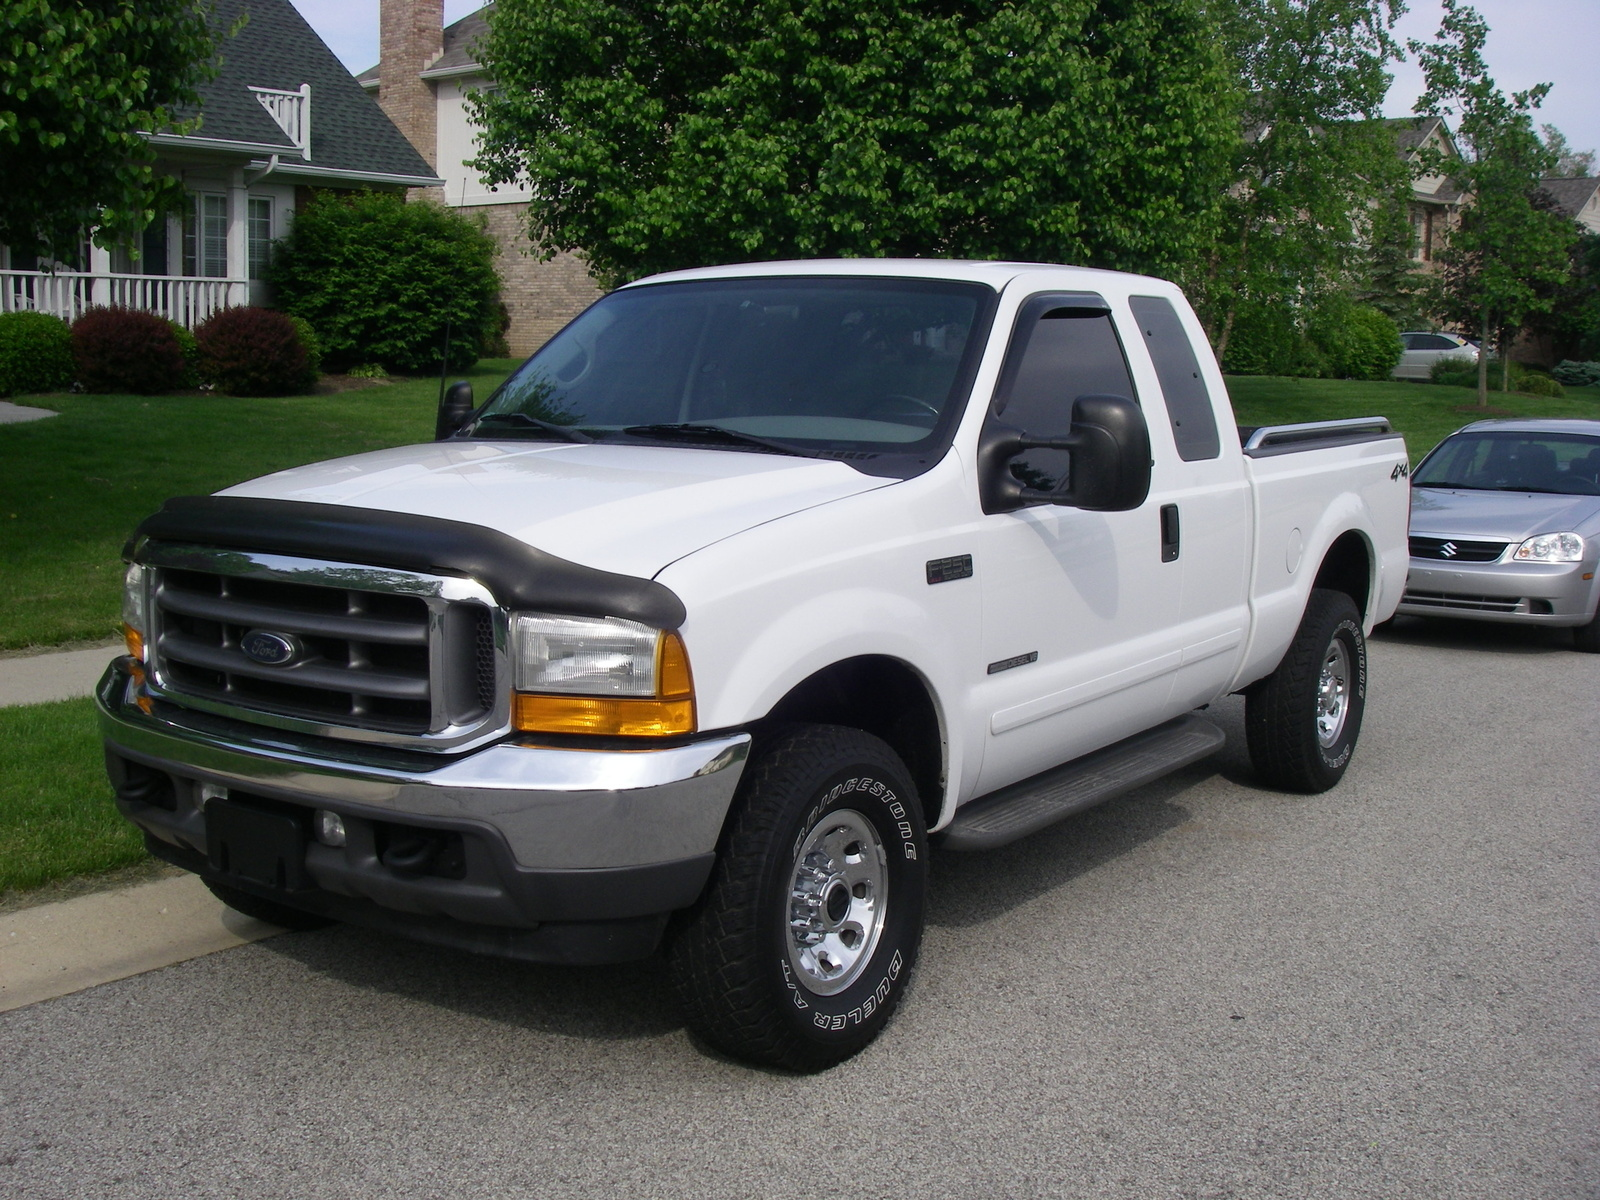 2001 ford f 250 super duty overview cargurus